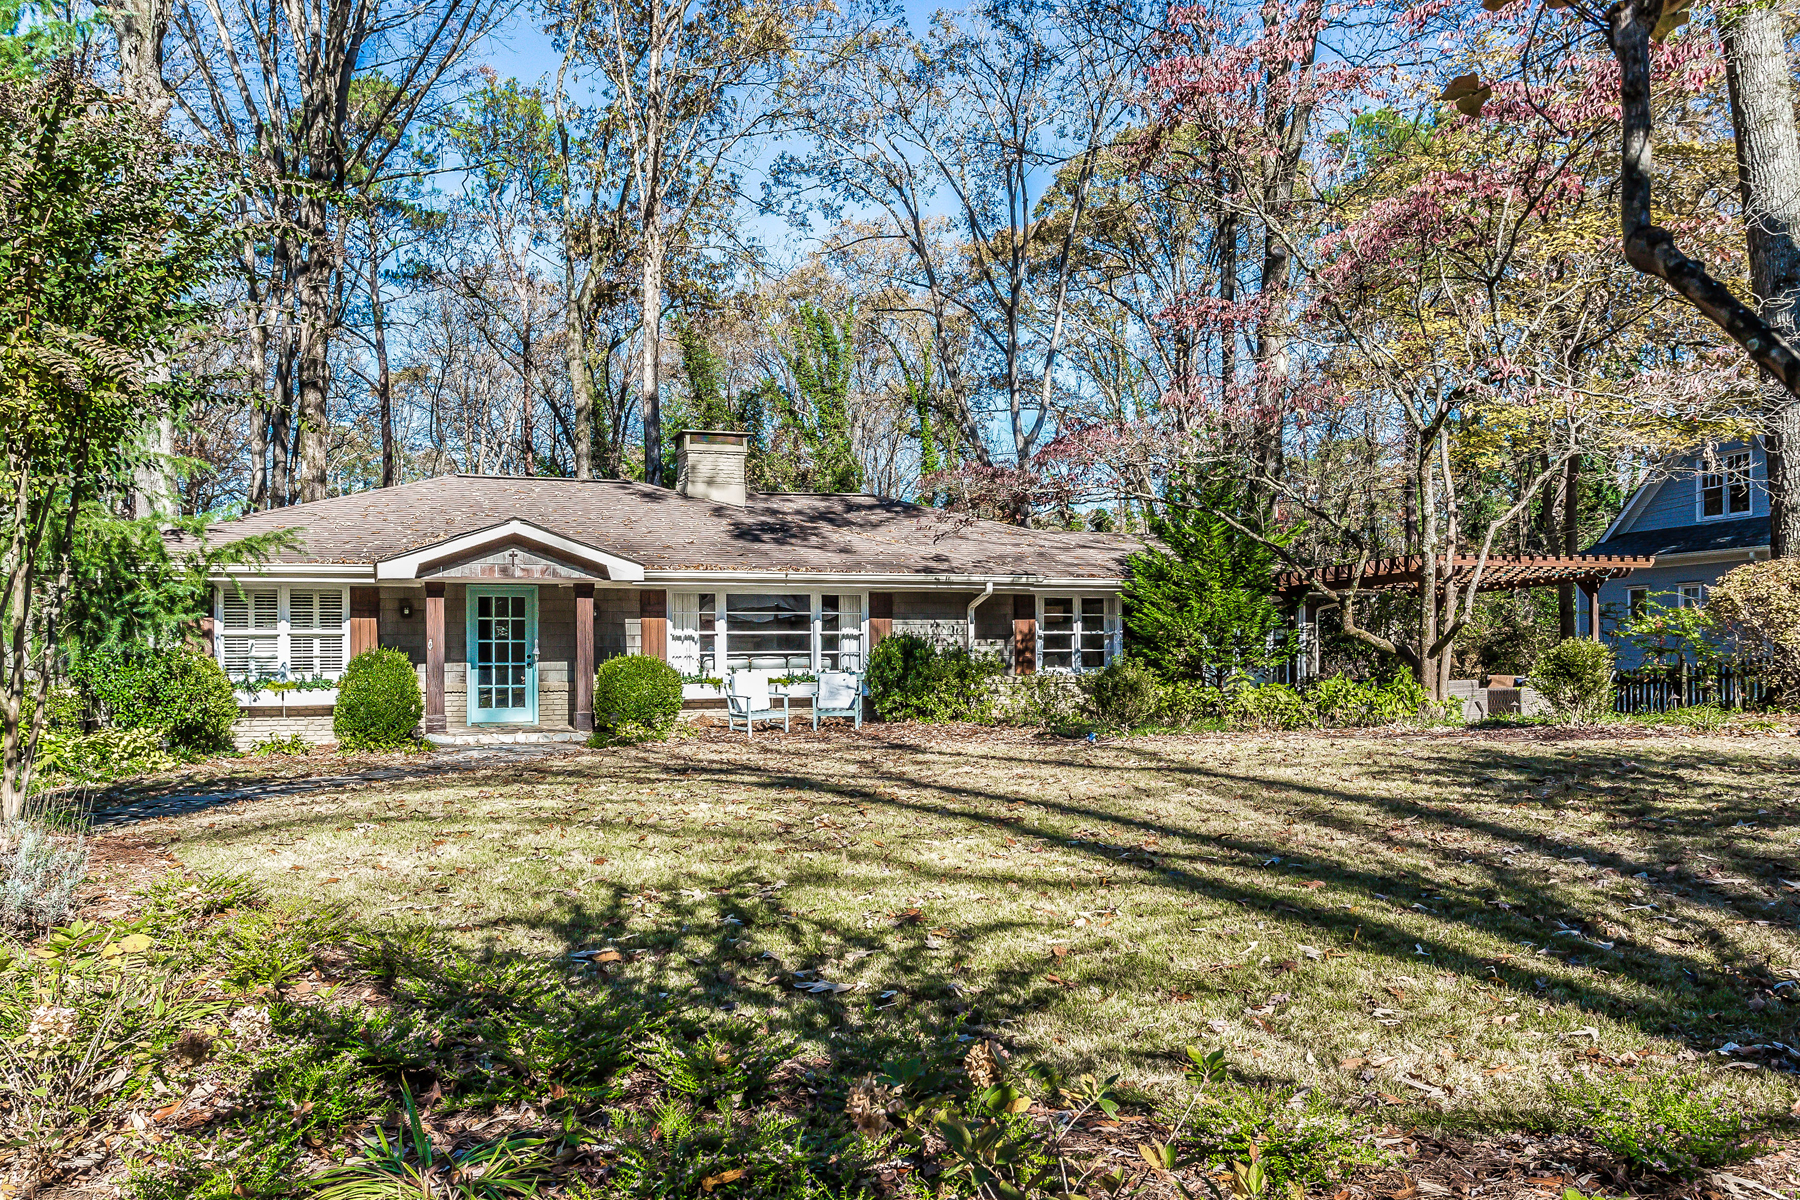 Single Family Home for Sale at Charming Home On One Acre In Sought After Chastain 487 Bryn Mawr Lane NW Chastain Park, Atlanta, Georgia 30327 United States